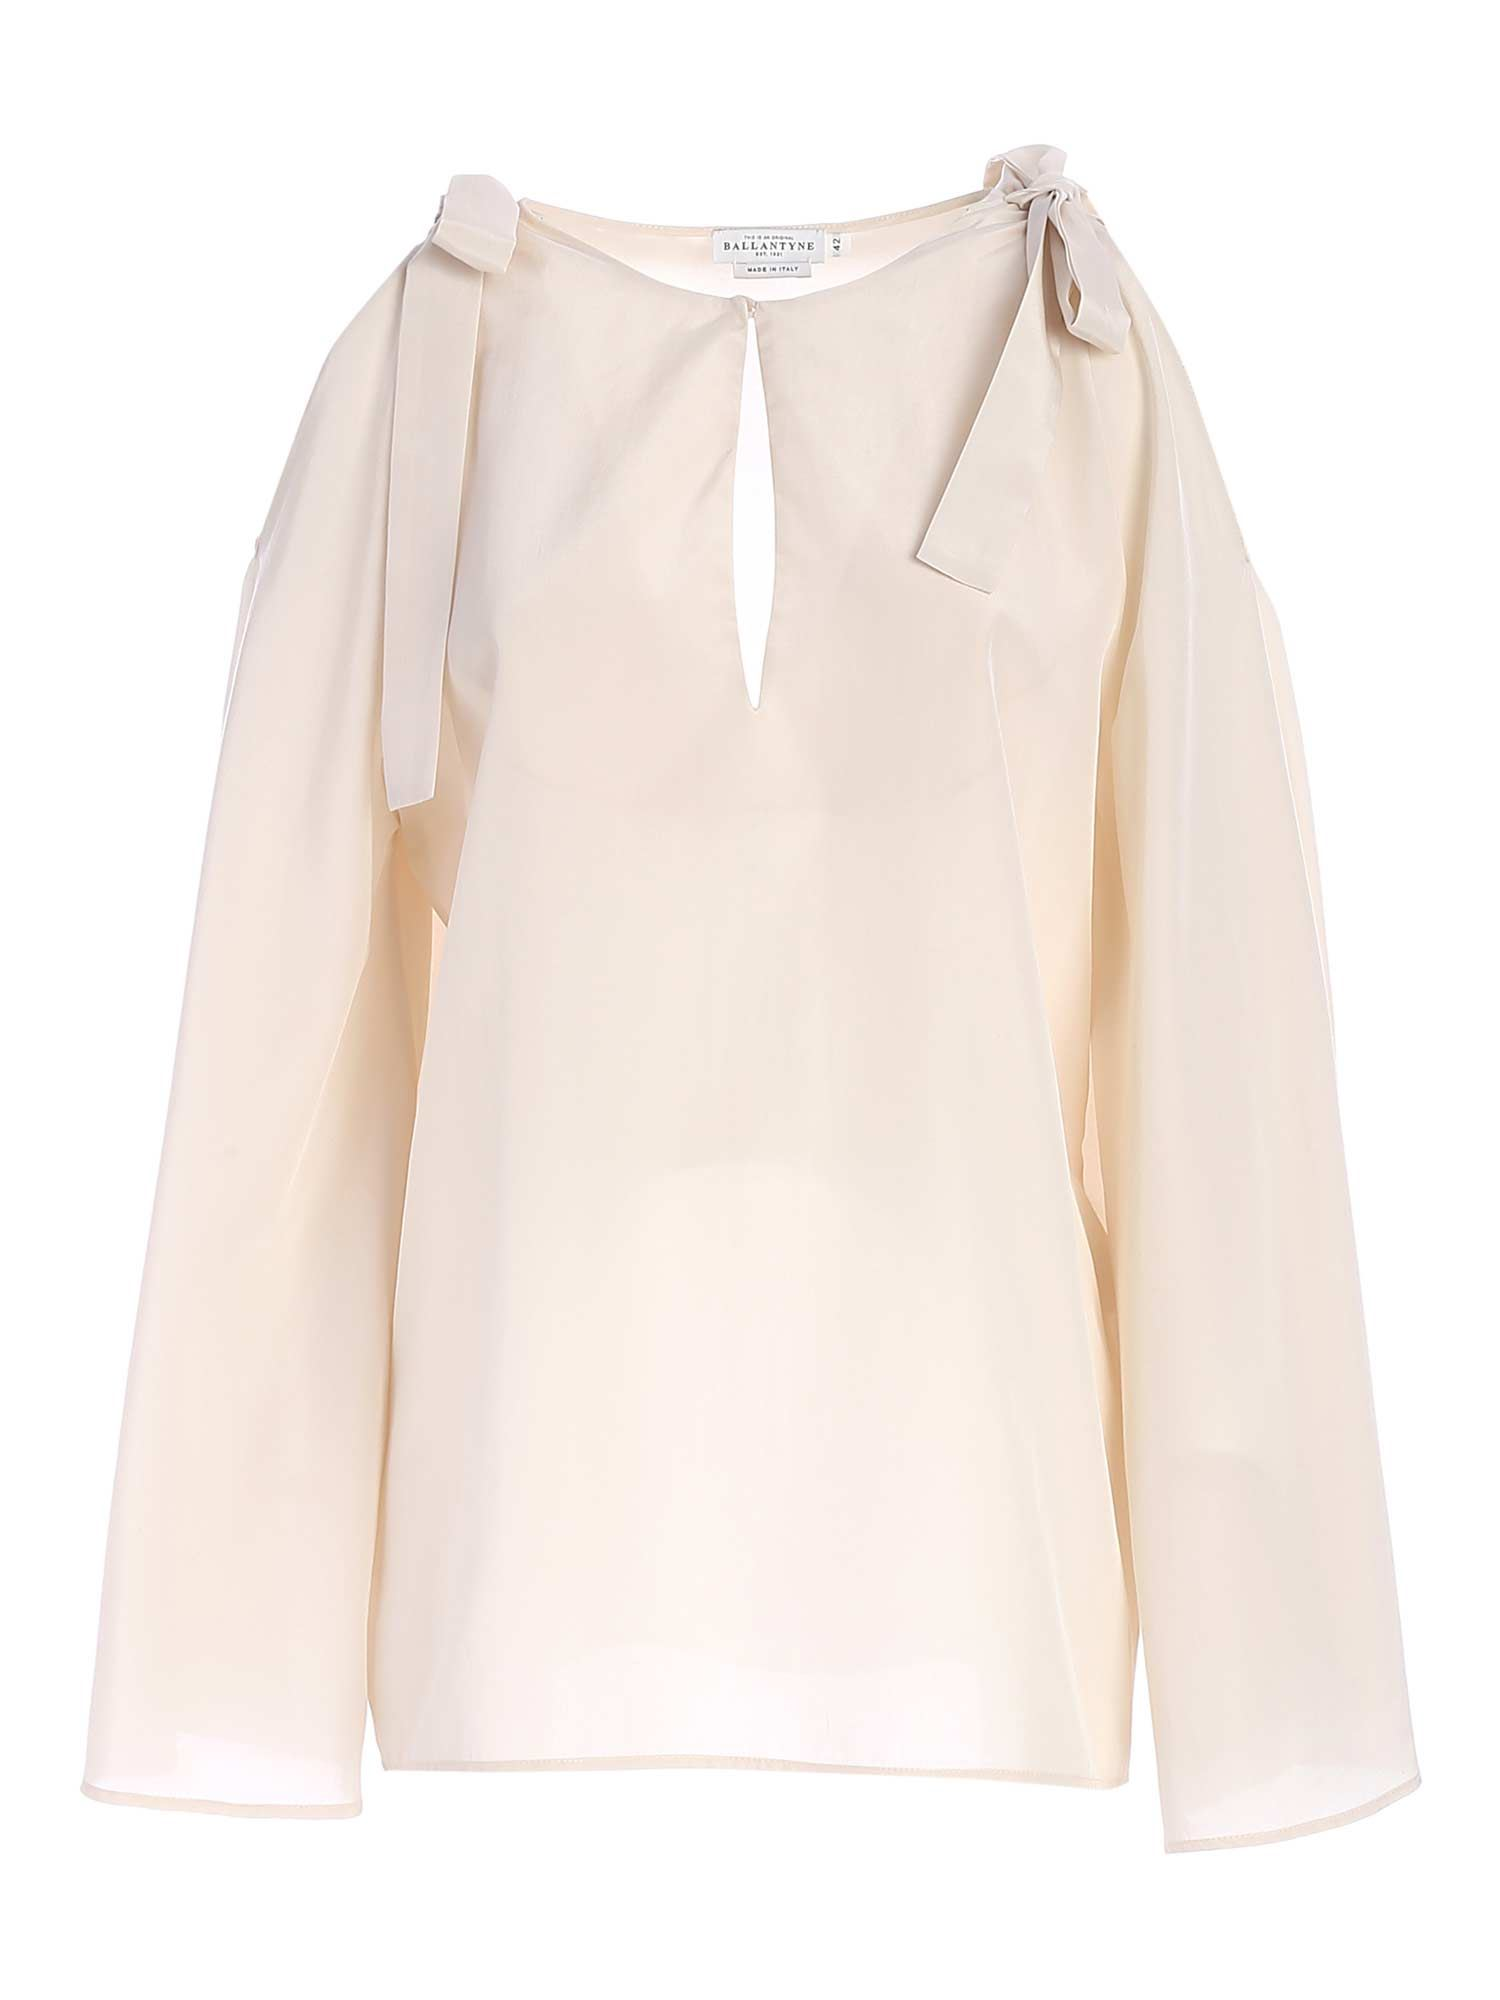 Ballantyne Silks BOWS BLOUSE IN WHITE